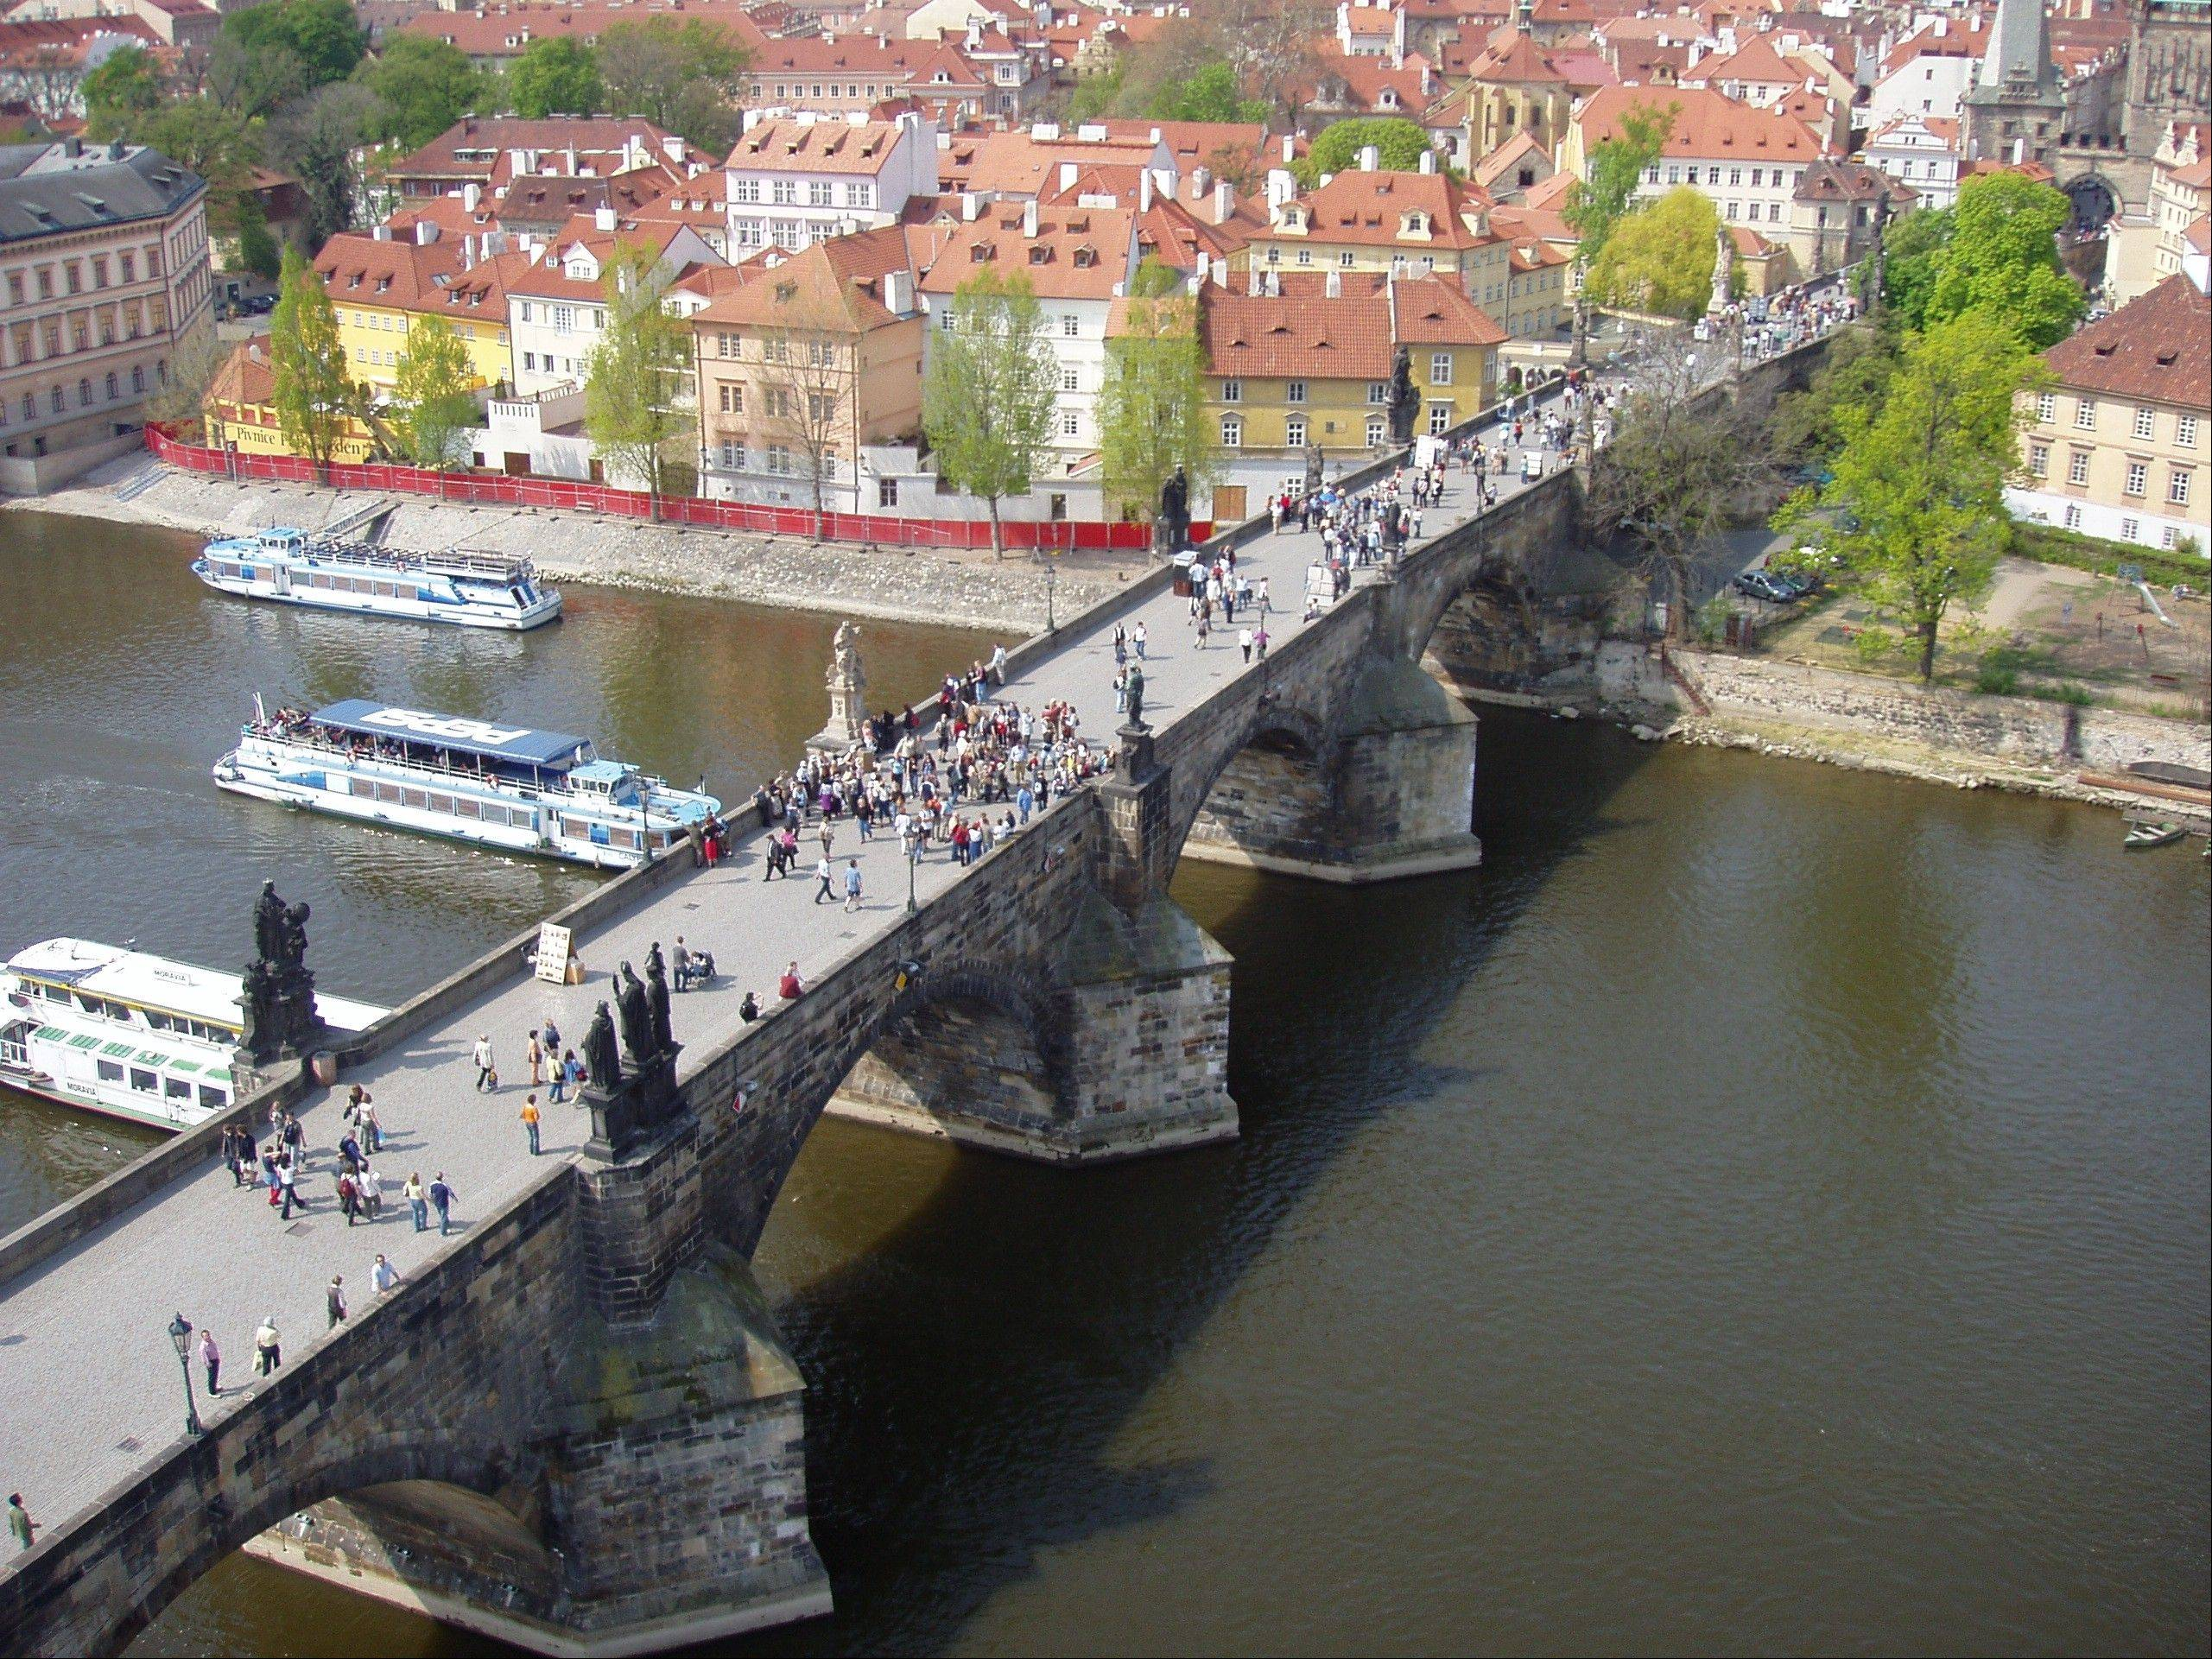 People walk over the Charles Bridge in Prague, Czech Republic. The bridge's construction began in 1357 under Charles IV, the Holy Roman Emperor known as the father of the Czech nation.